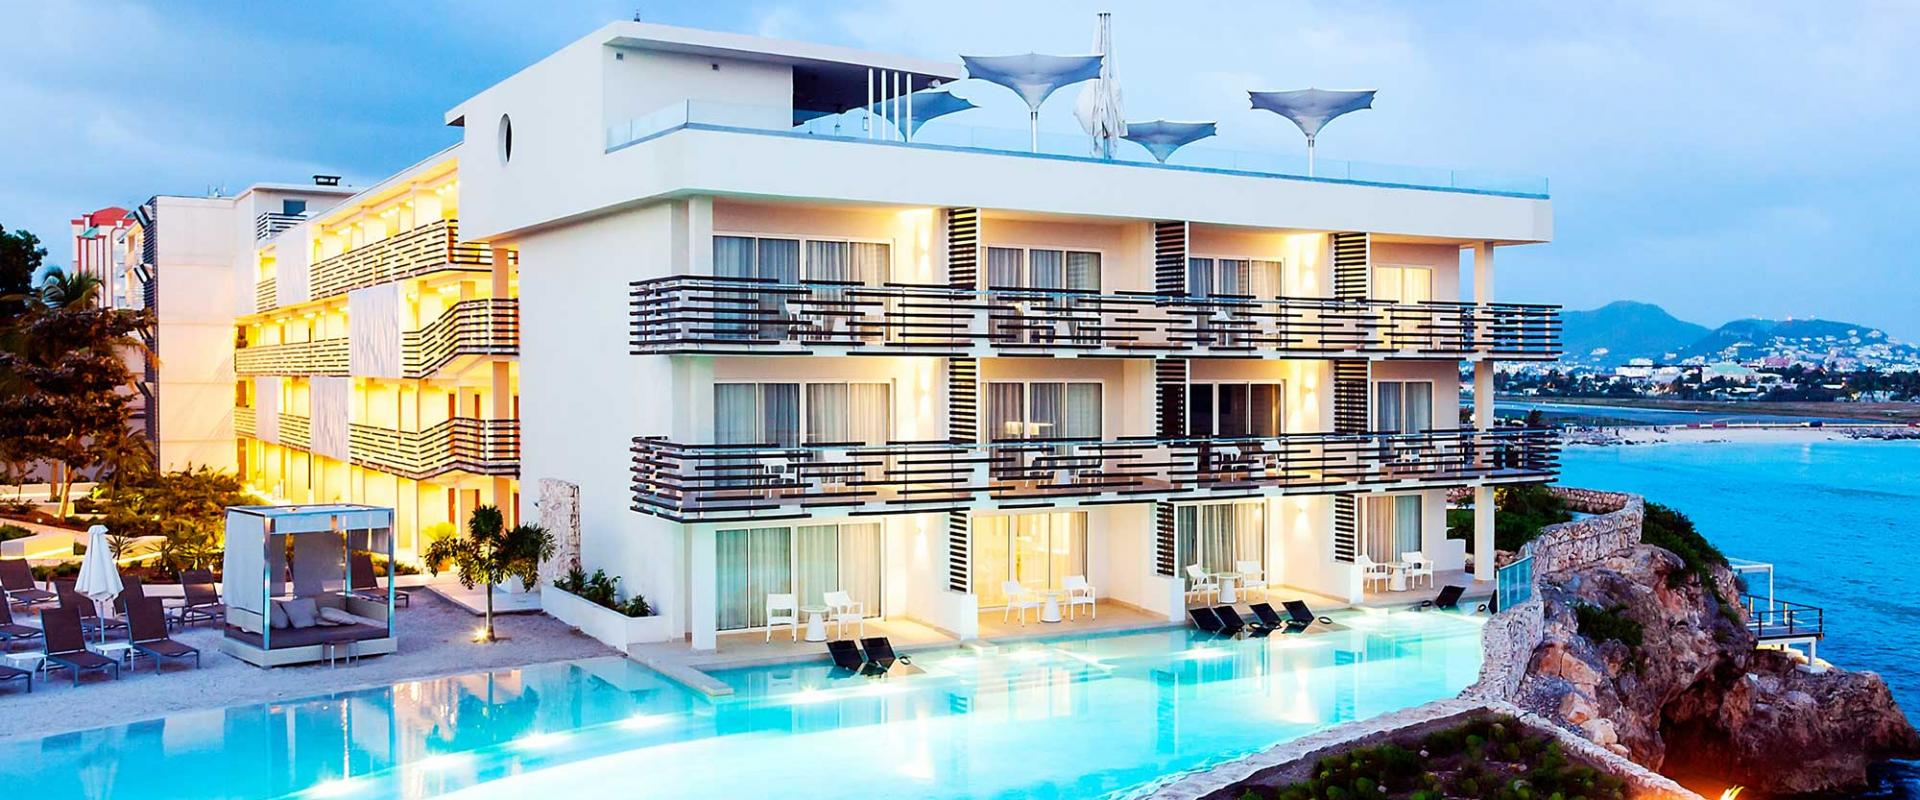 07-Pool-Edge-Pool-and-Sunset-Butler-Suites